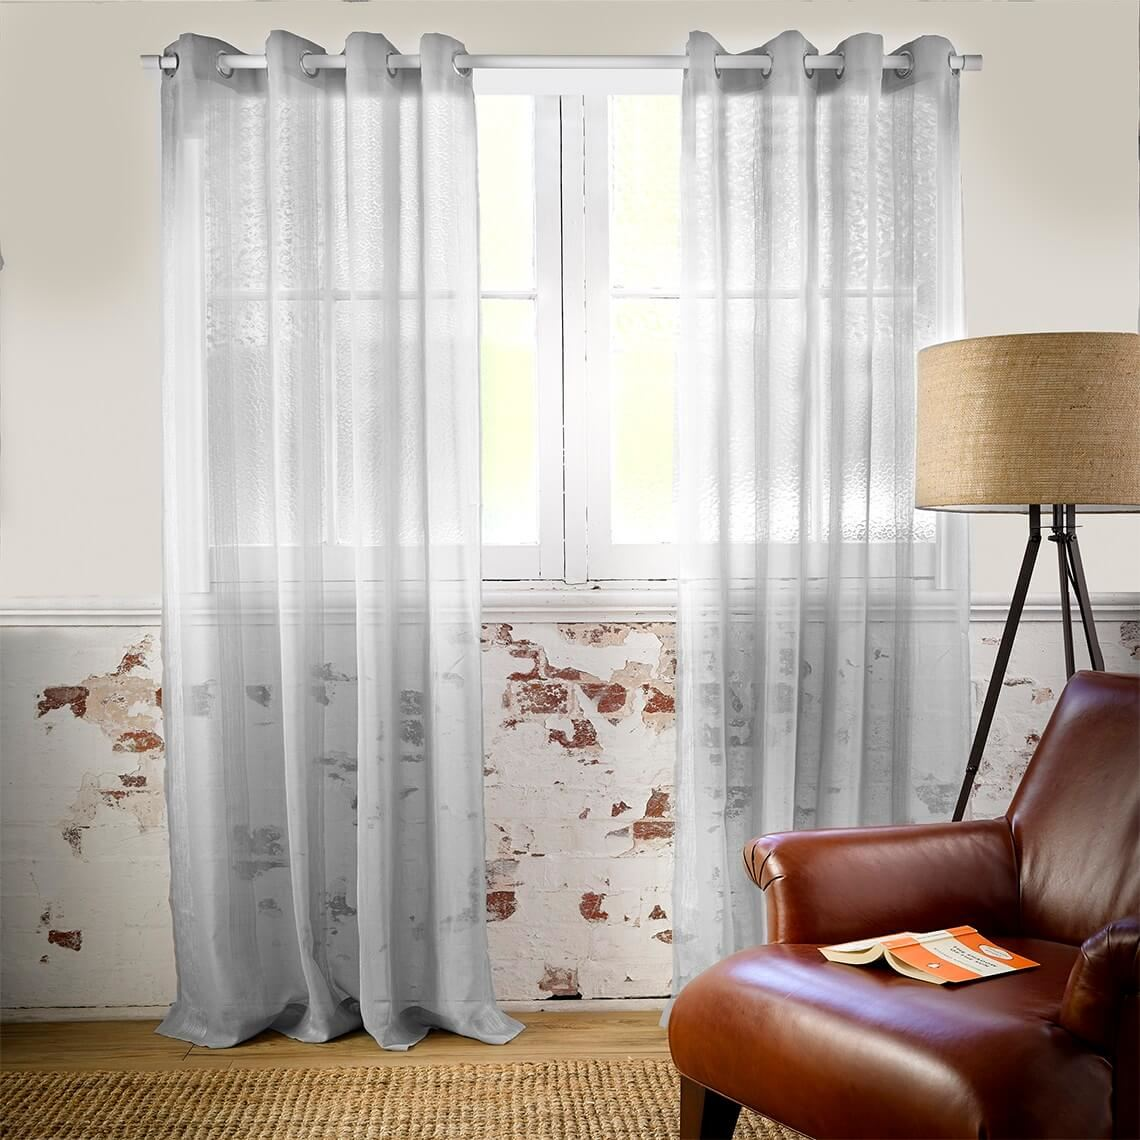 Houston Sheer Curtain Size W 180cm x D 1cm x H 250cm in Silver Polyester/Stainless Steel Eyelets Freedom by Freedom, a Curtains for sale on Style Sourcebook